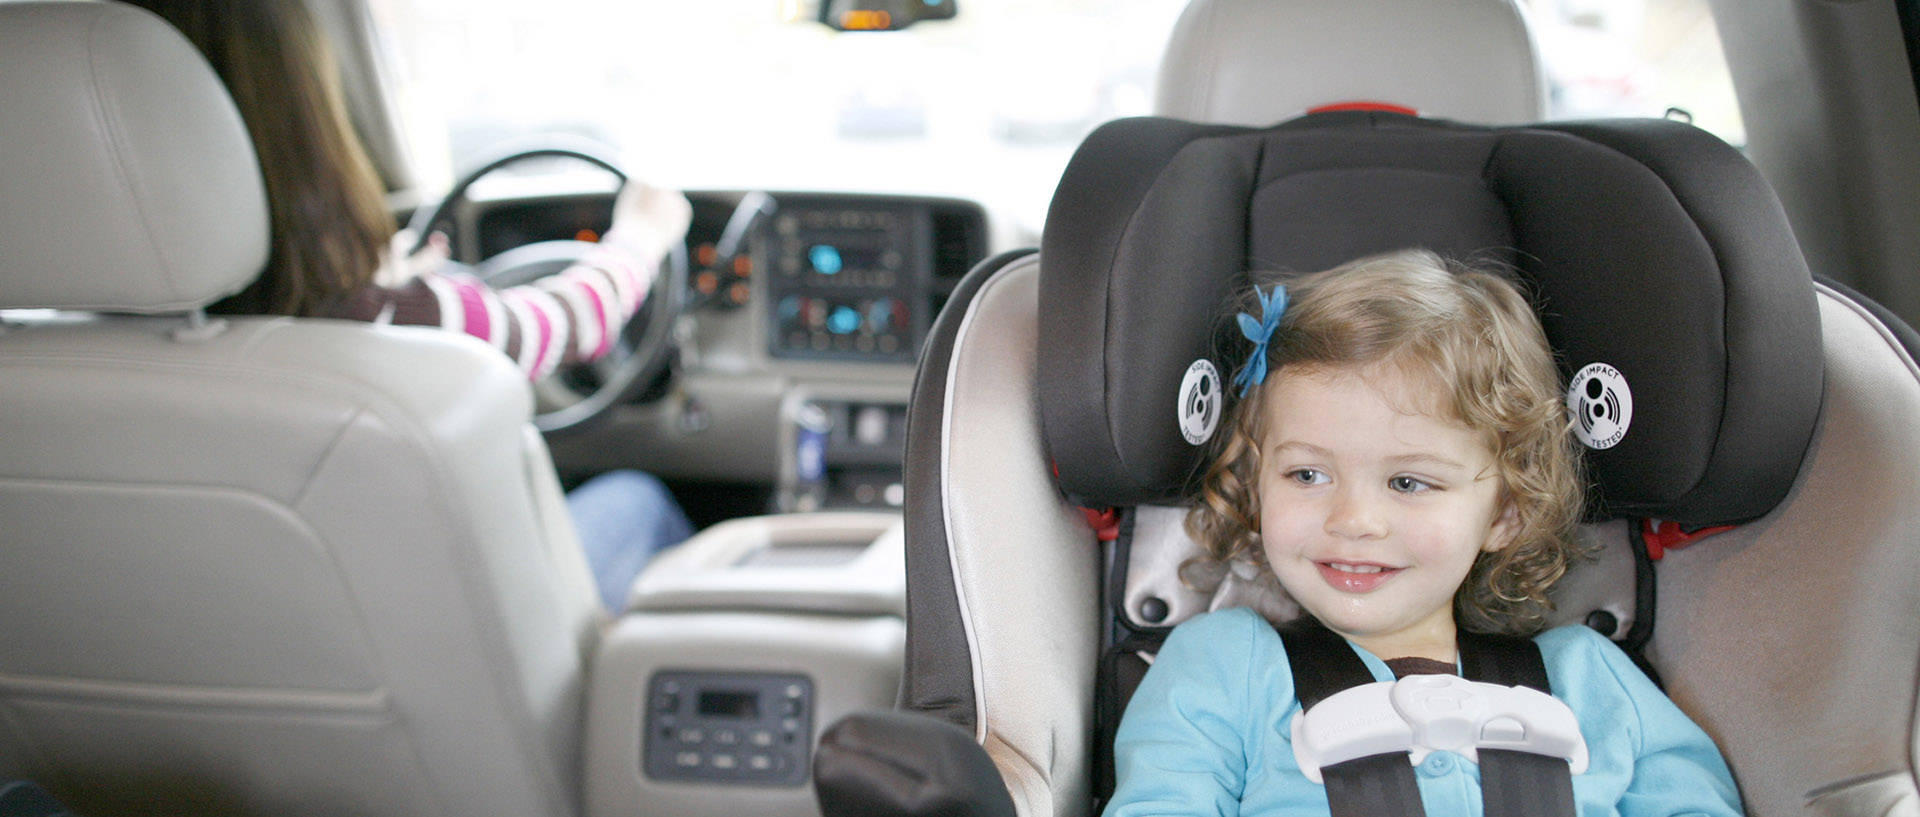 Rear Facing Car Seats Are Still The Safest Way For Young